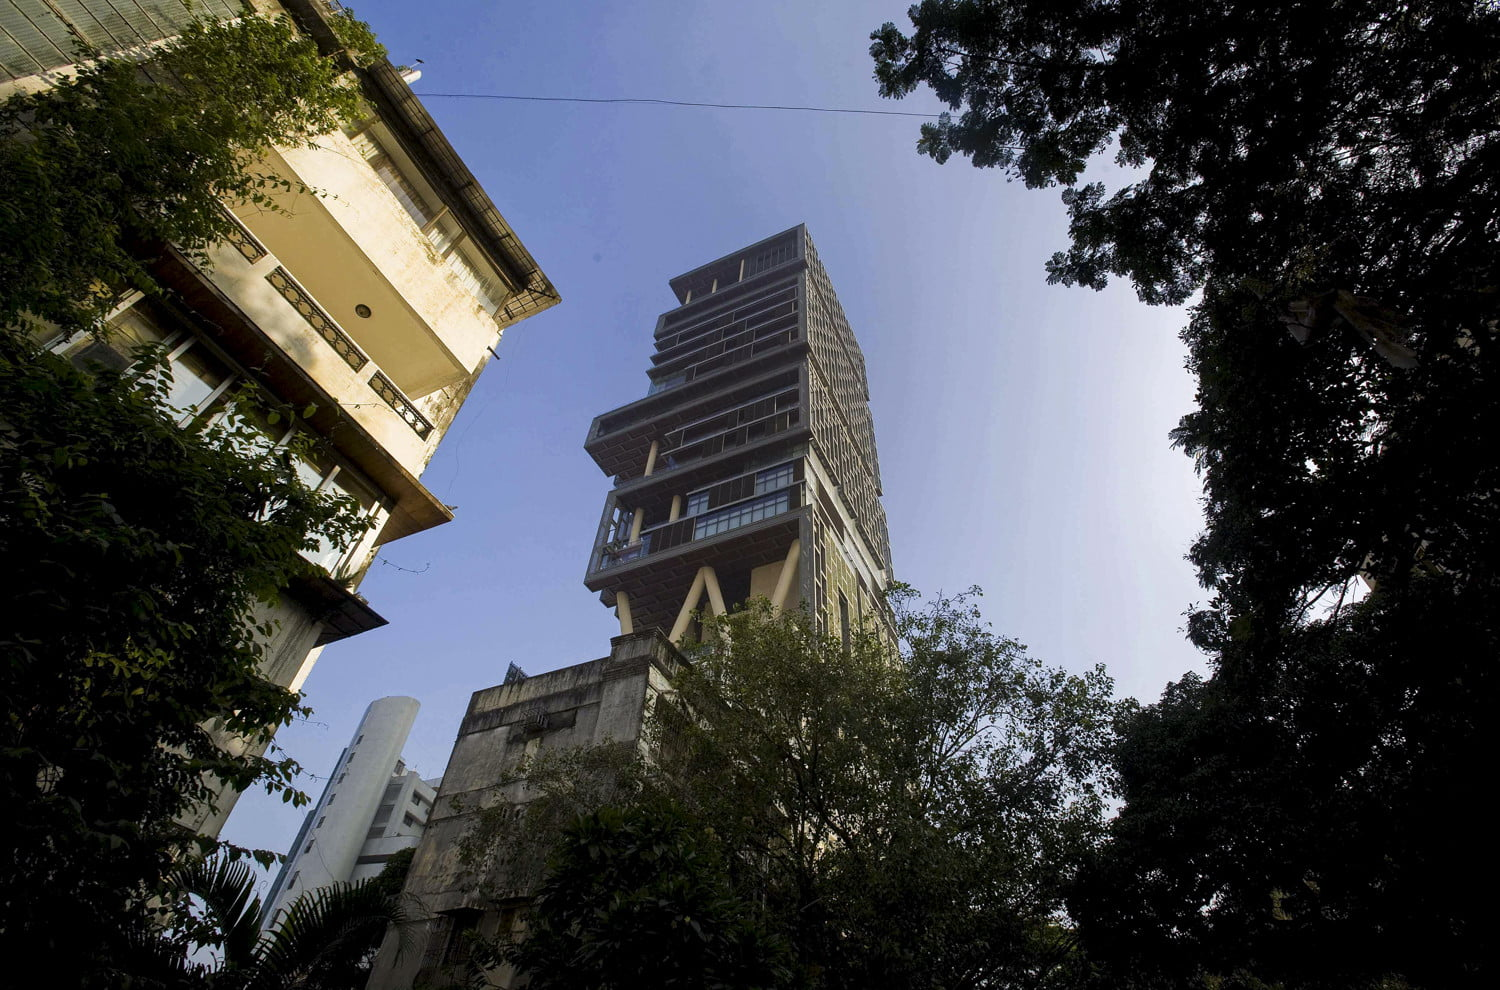 The biggest houses in the world antilia the biltmore estate and more digital trends